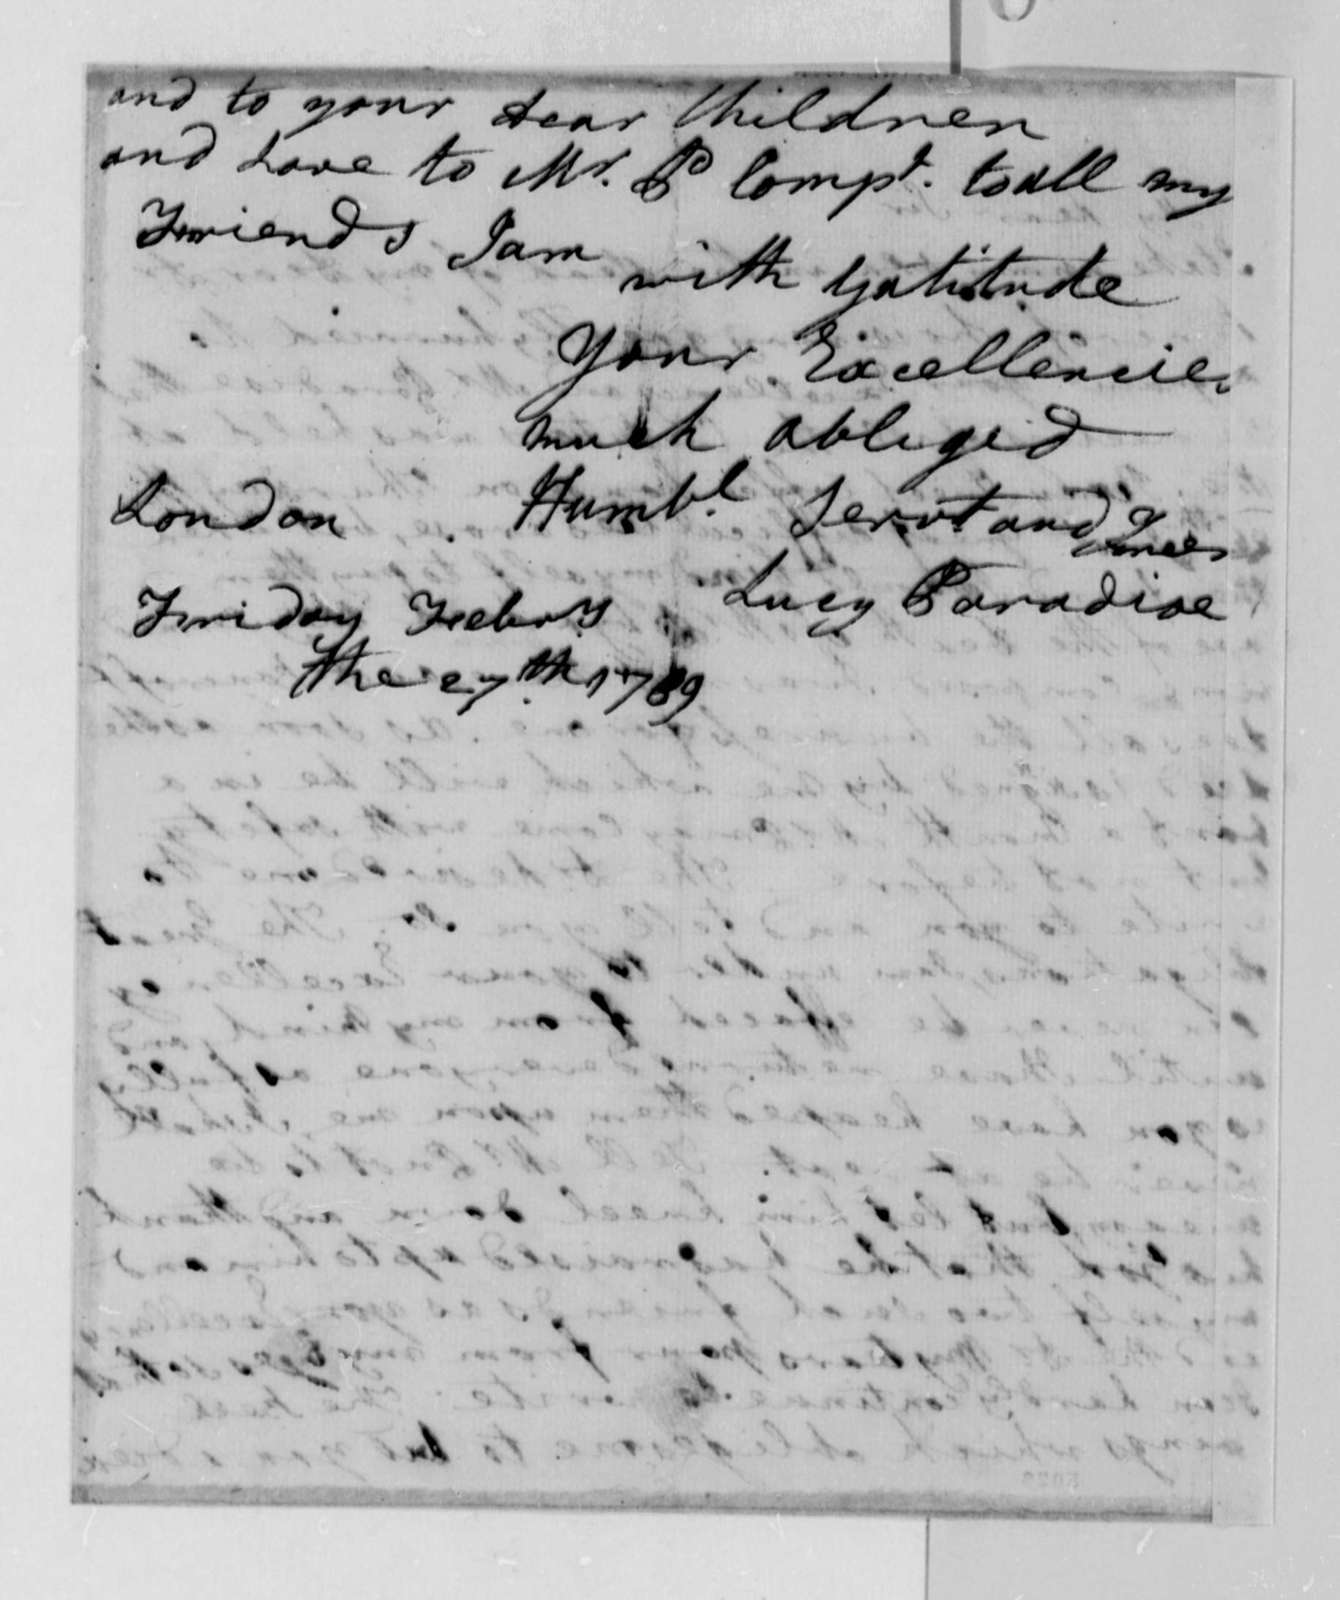 Lucy Ludwell Paradise to Thomas Jefferson, February 27, 1789